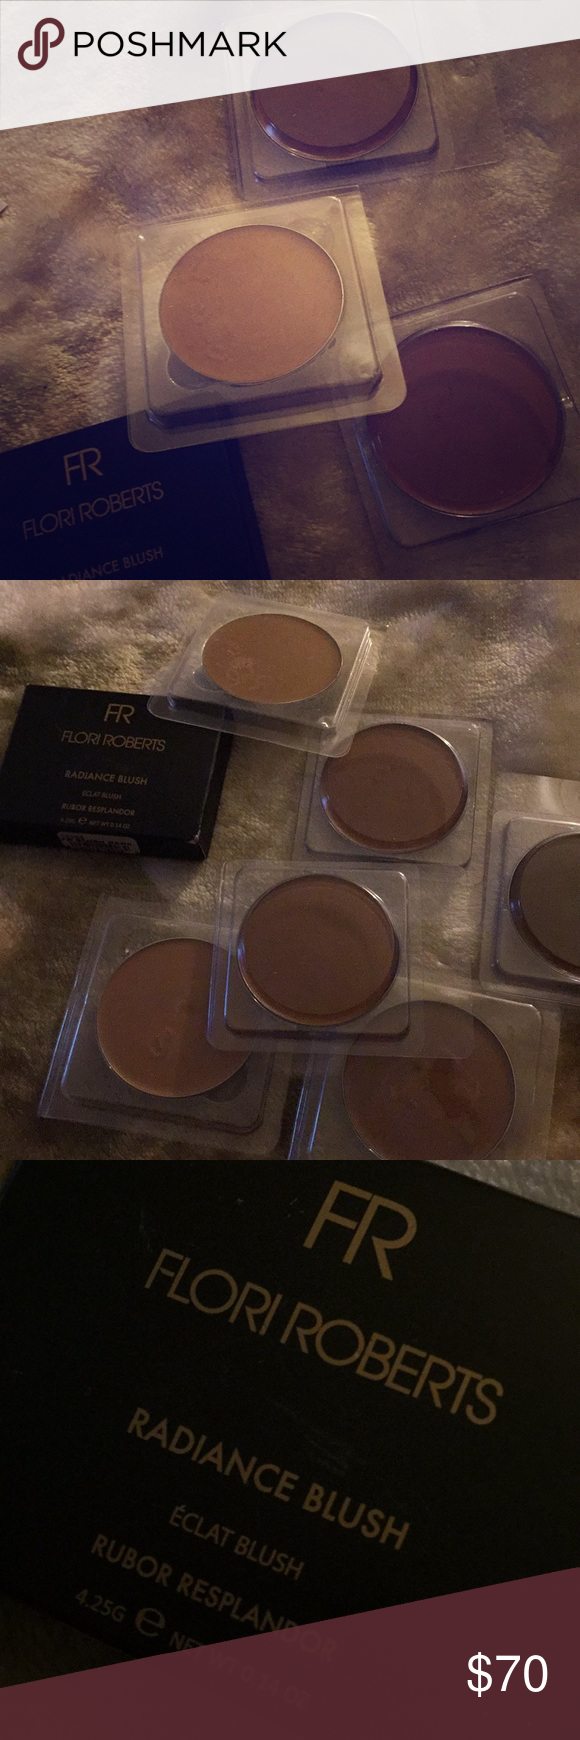 Flori Roberts makeup You must take all this is wholesale